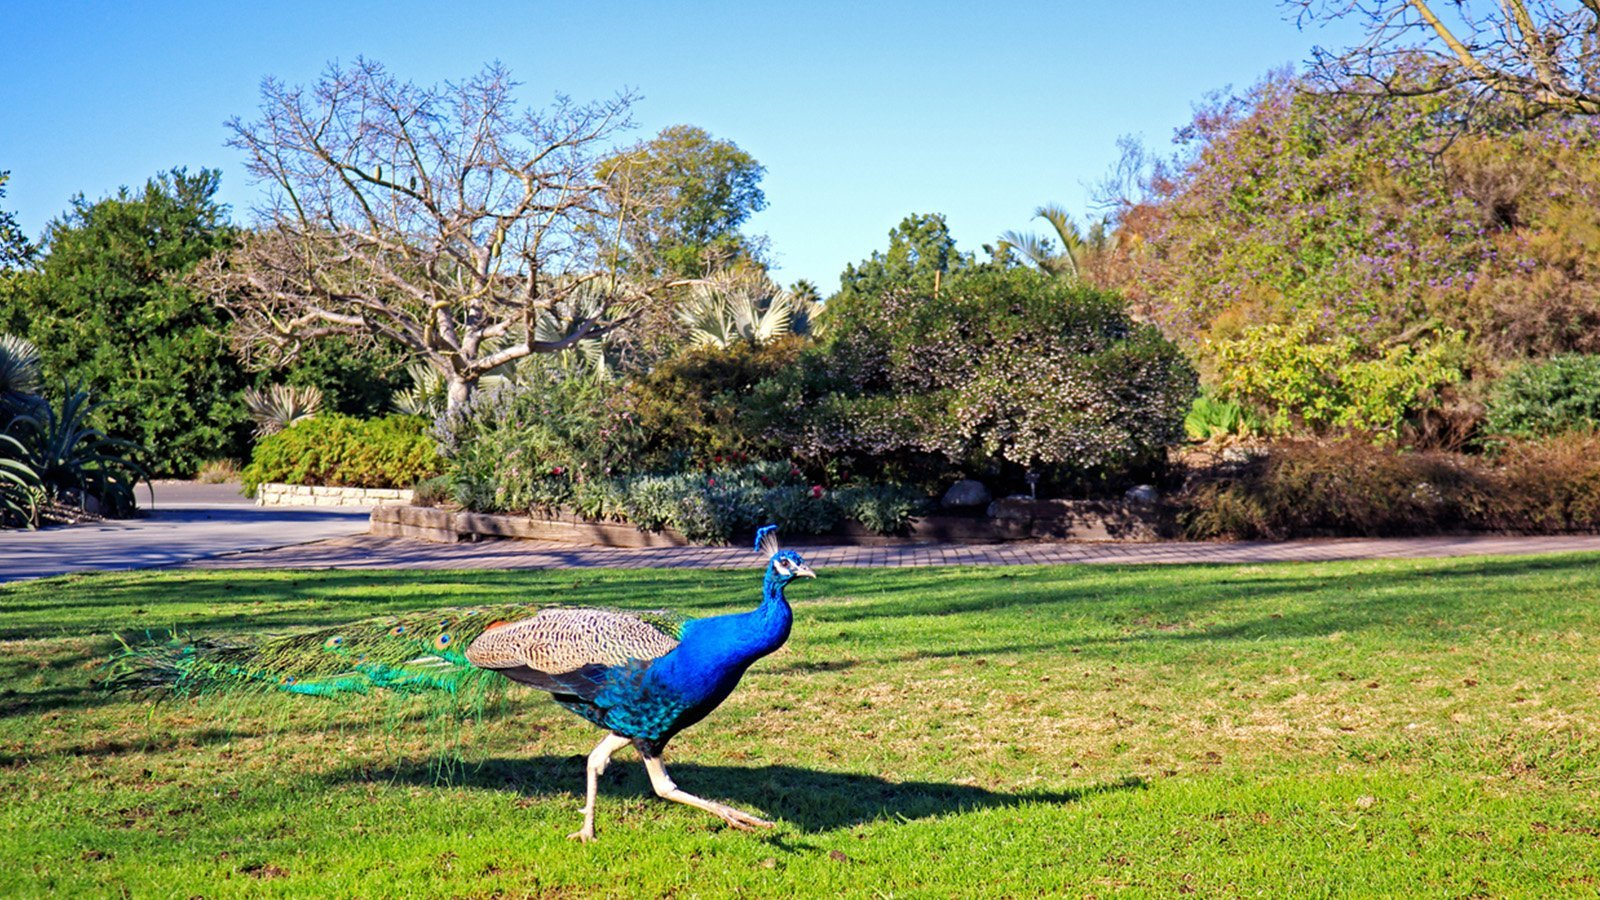 County-Arboretum-and-Botanic-Garden los angeles dorchester collection what to do summer 2019 ideas